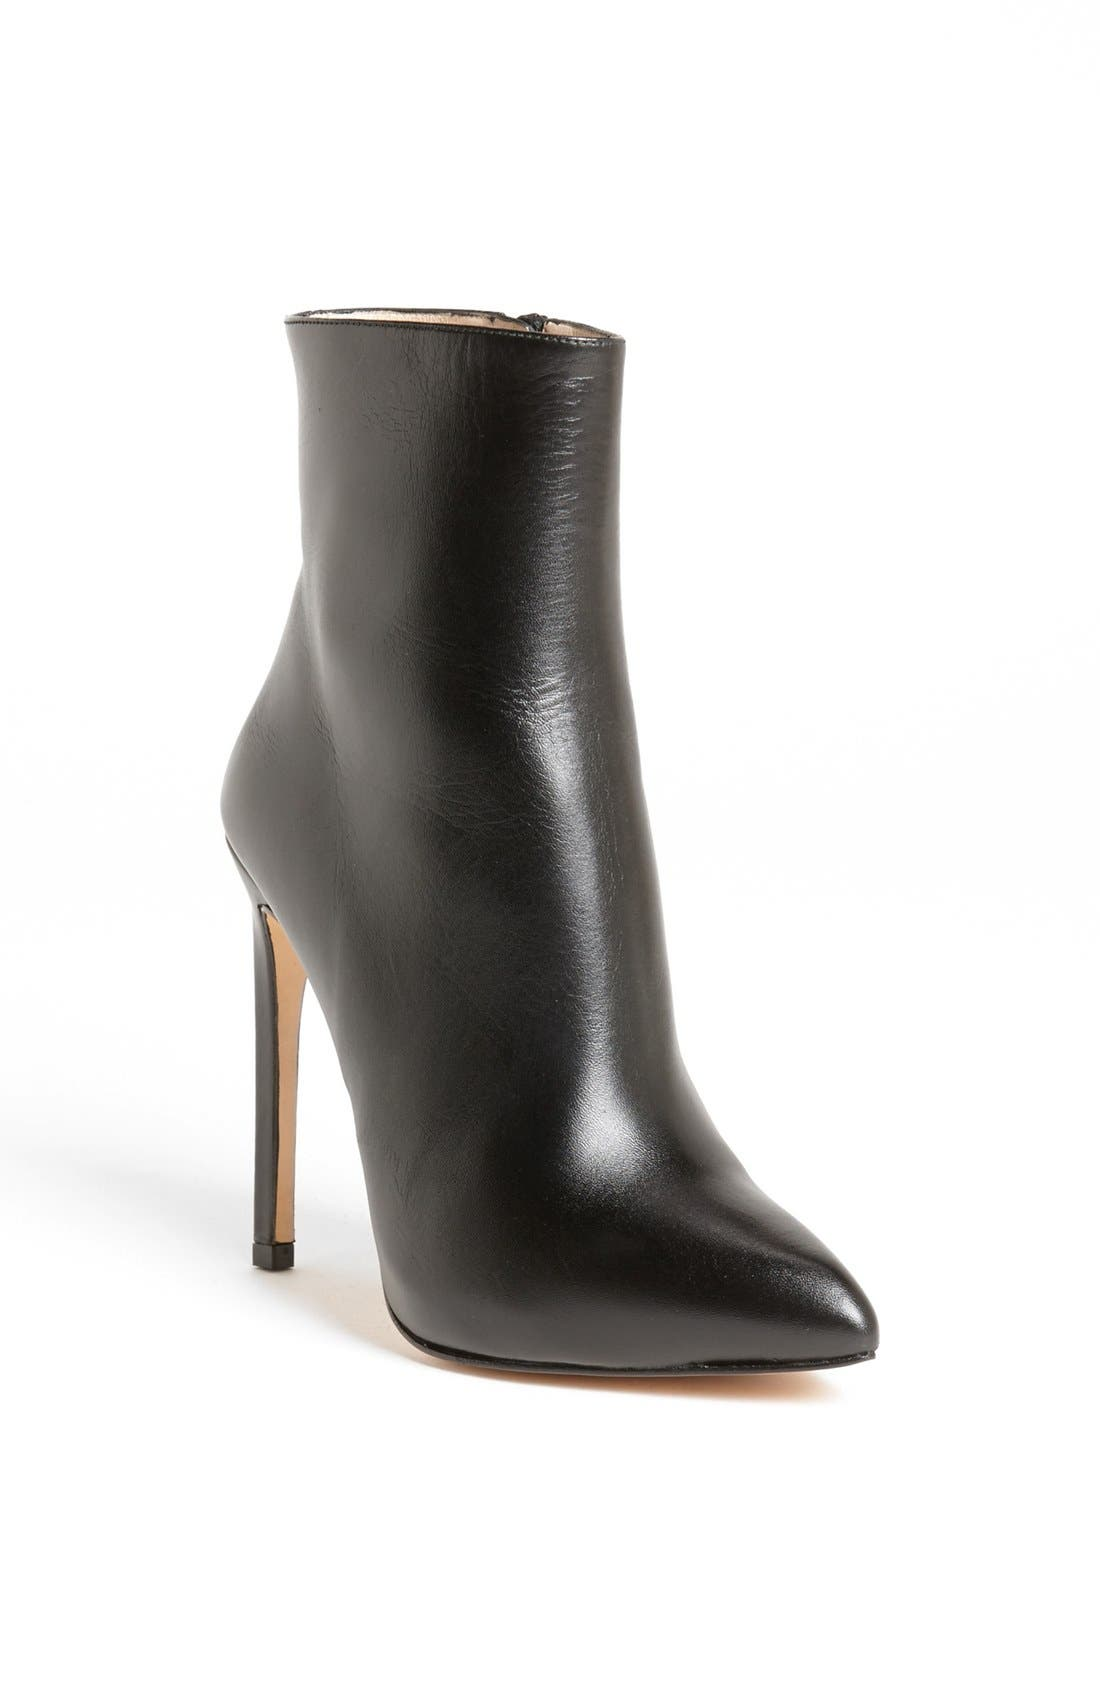 Alternate Image 1 Selected - Topshop 'The Collection Starring Kate Bosworth' Bootie